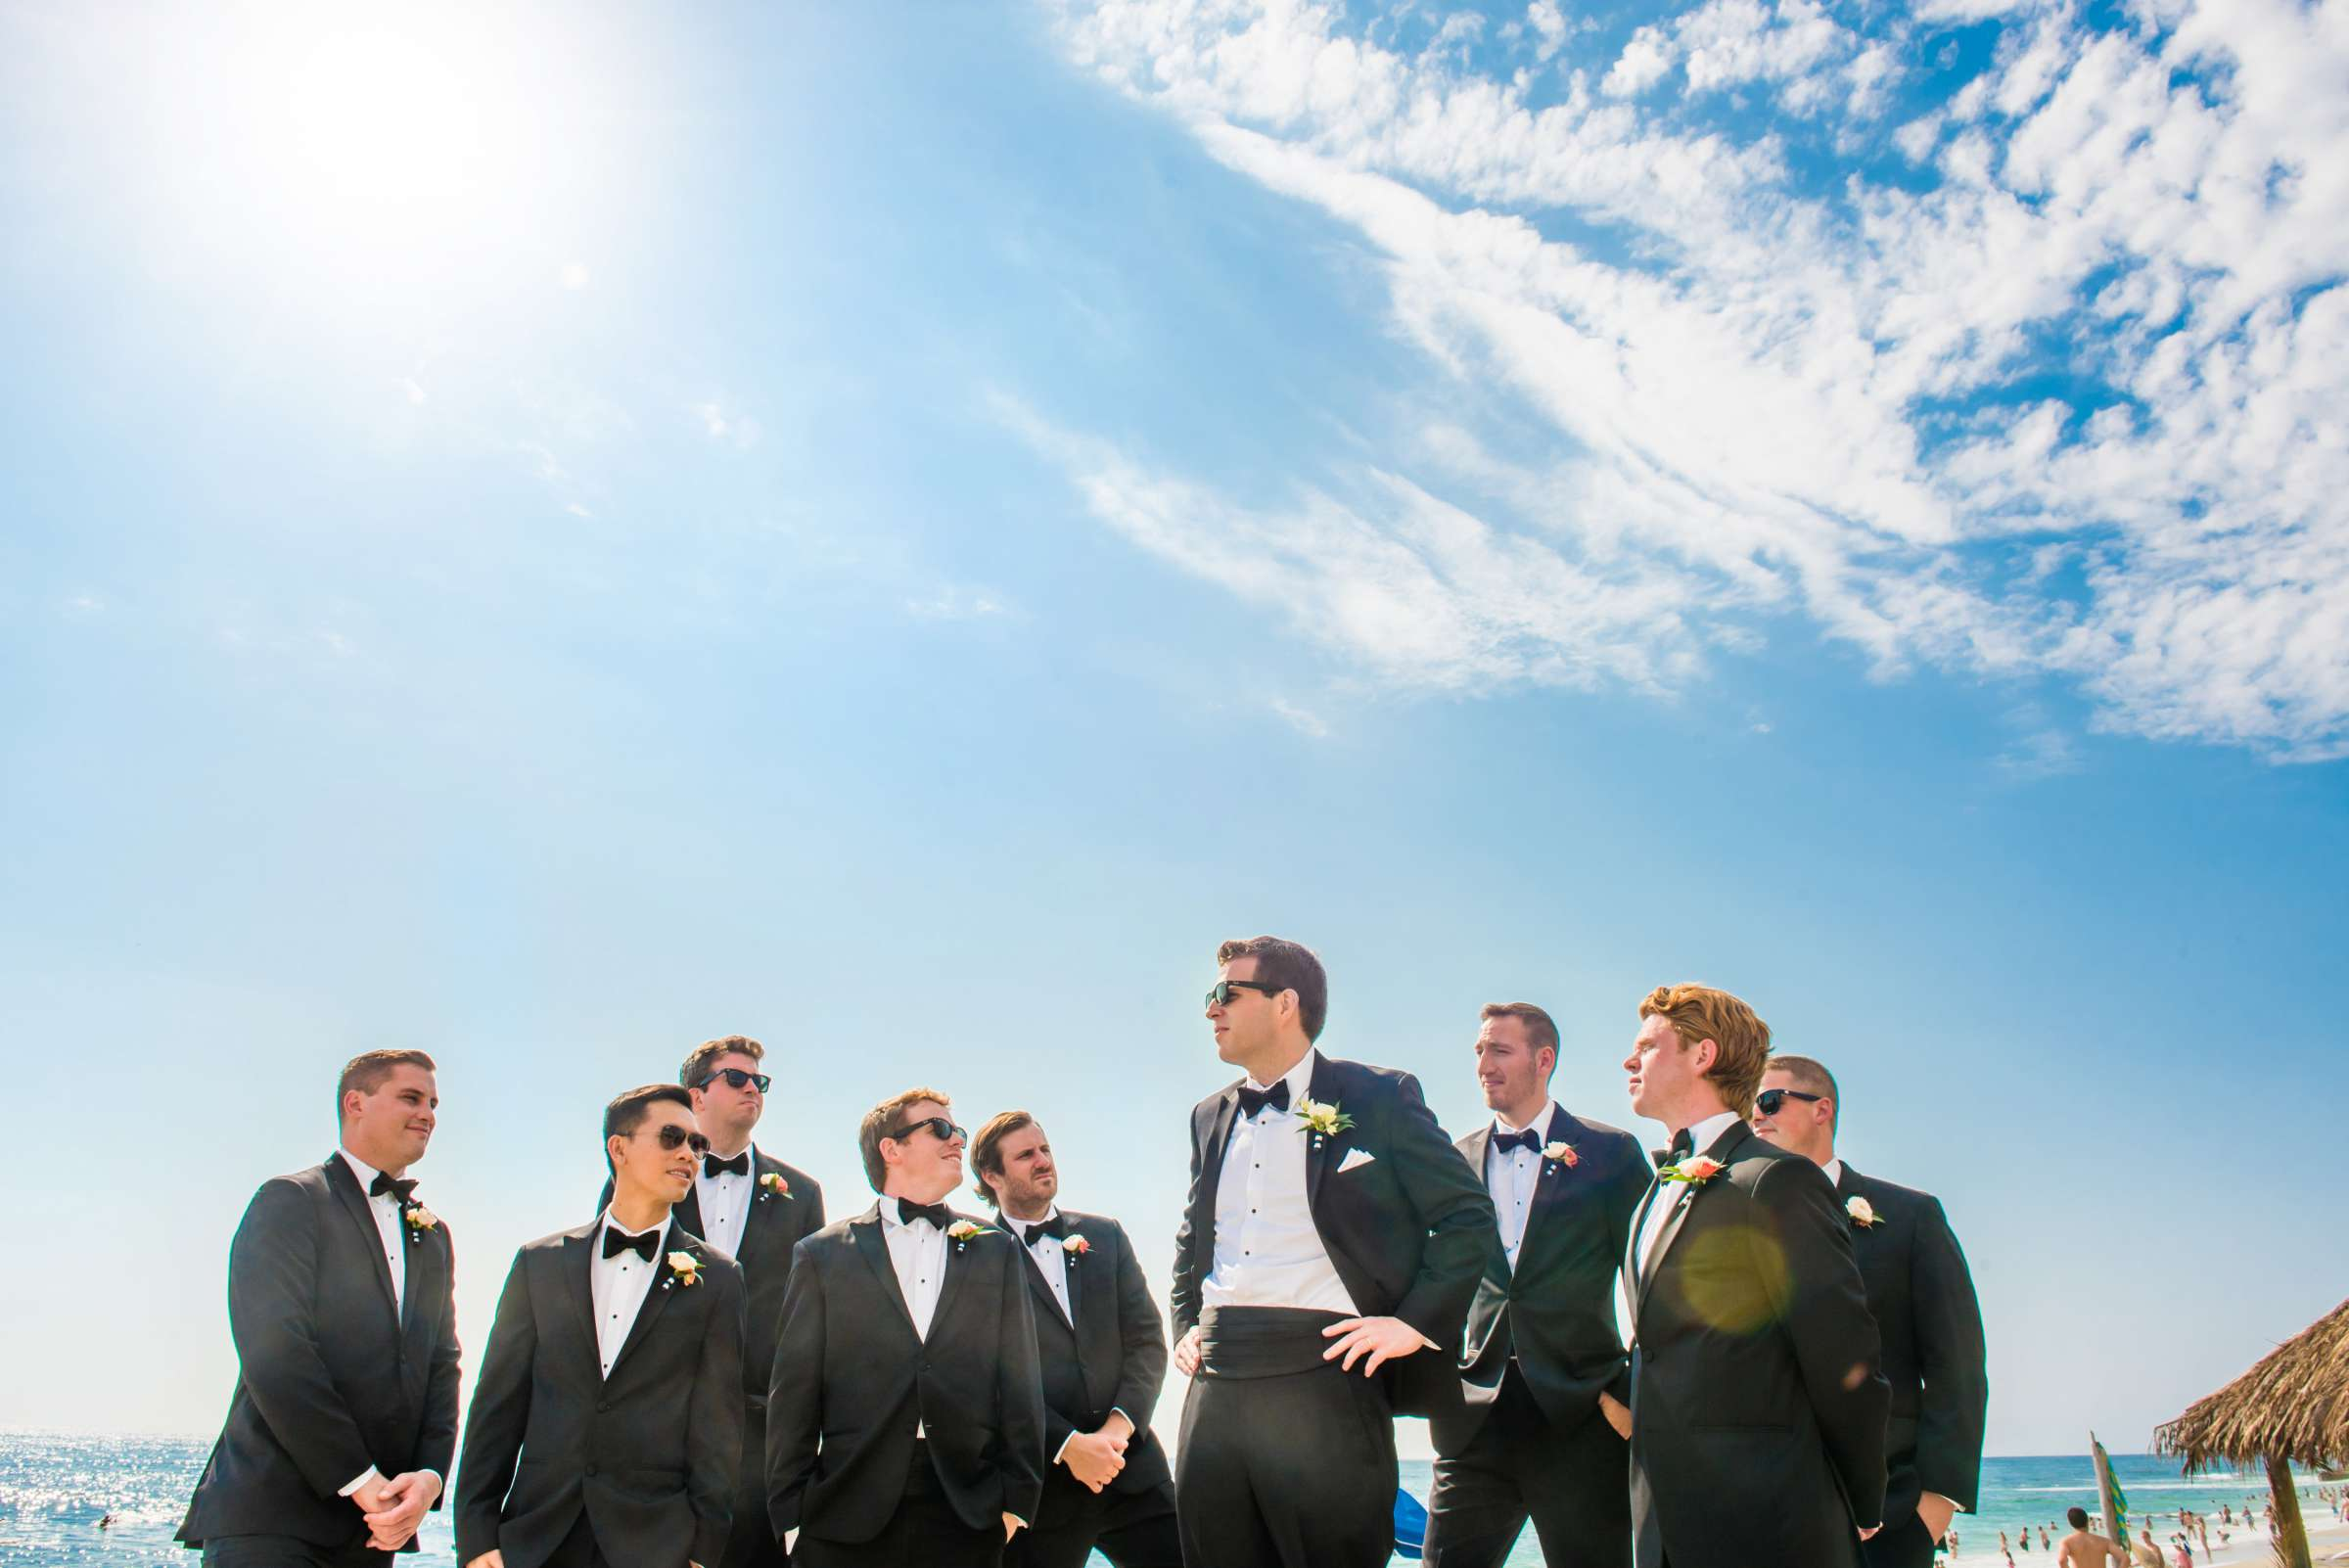 Groomsmen at Bahia Hotel Wedding coordinated by I Do Weddings, Meredith and Jack Wedding Photo #11 by True Photography